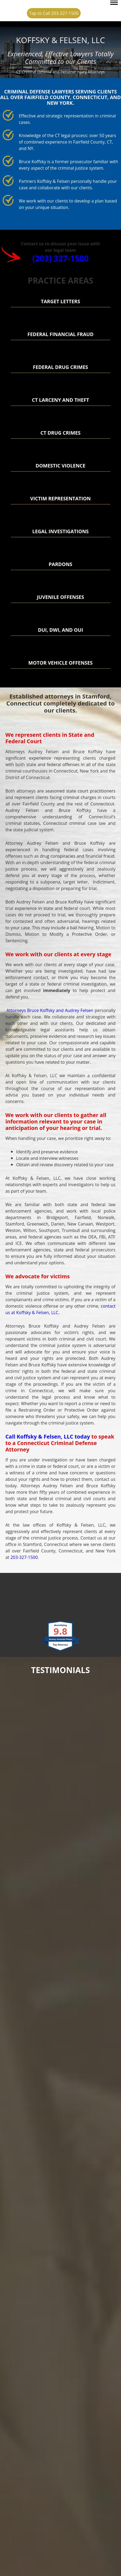 Koffsky & Felsen, LLC - Stamford CT Lawyers